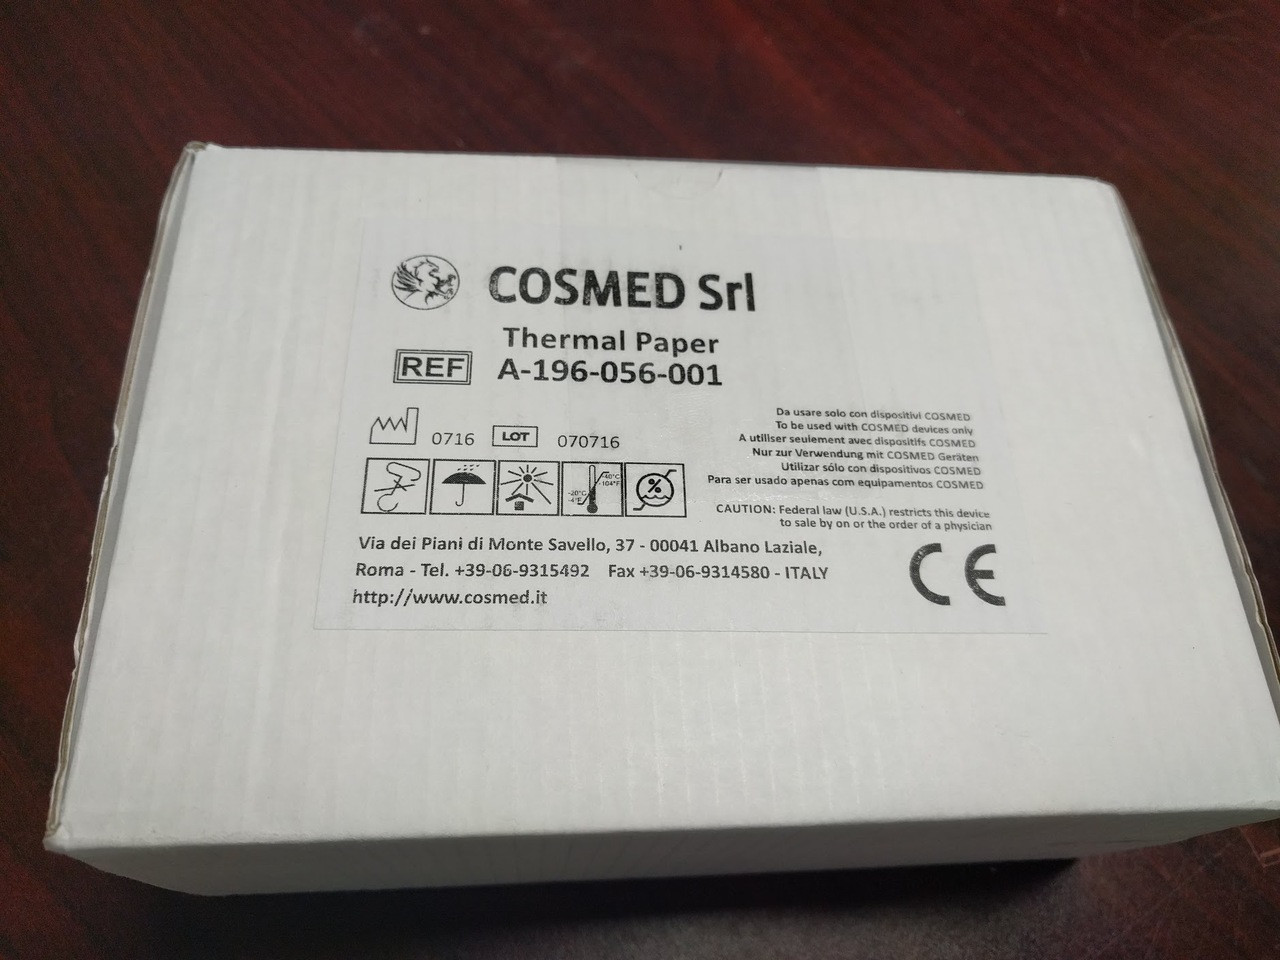 Cosmed Thermal Paper Ref. A-196-056-001